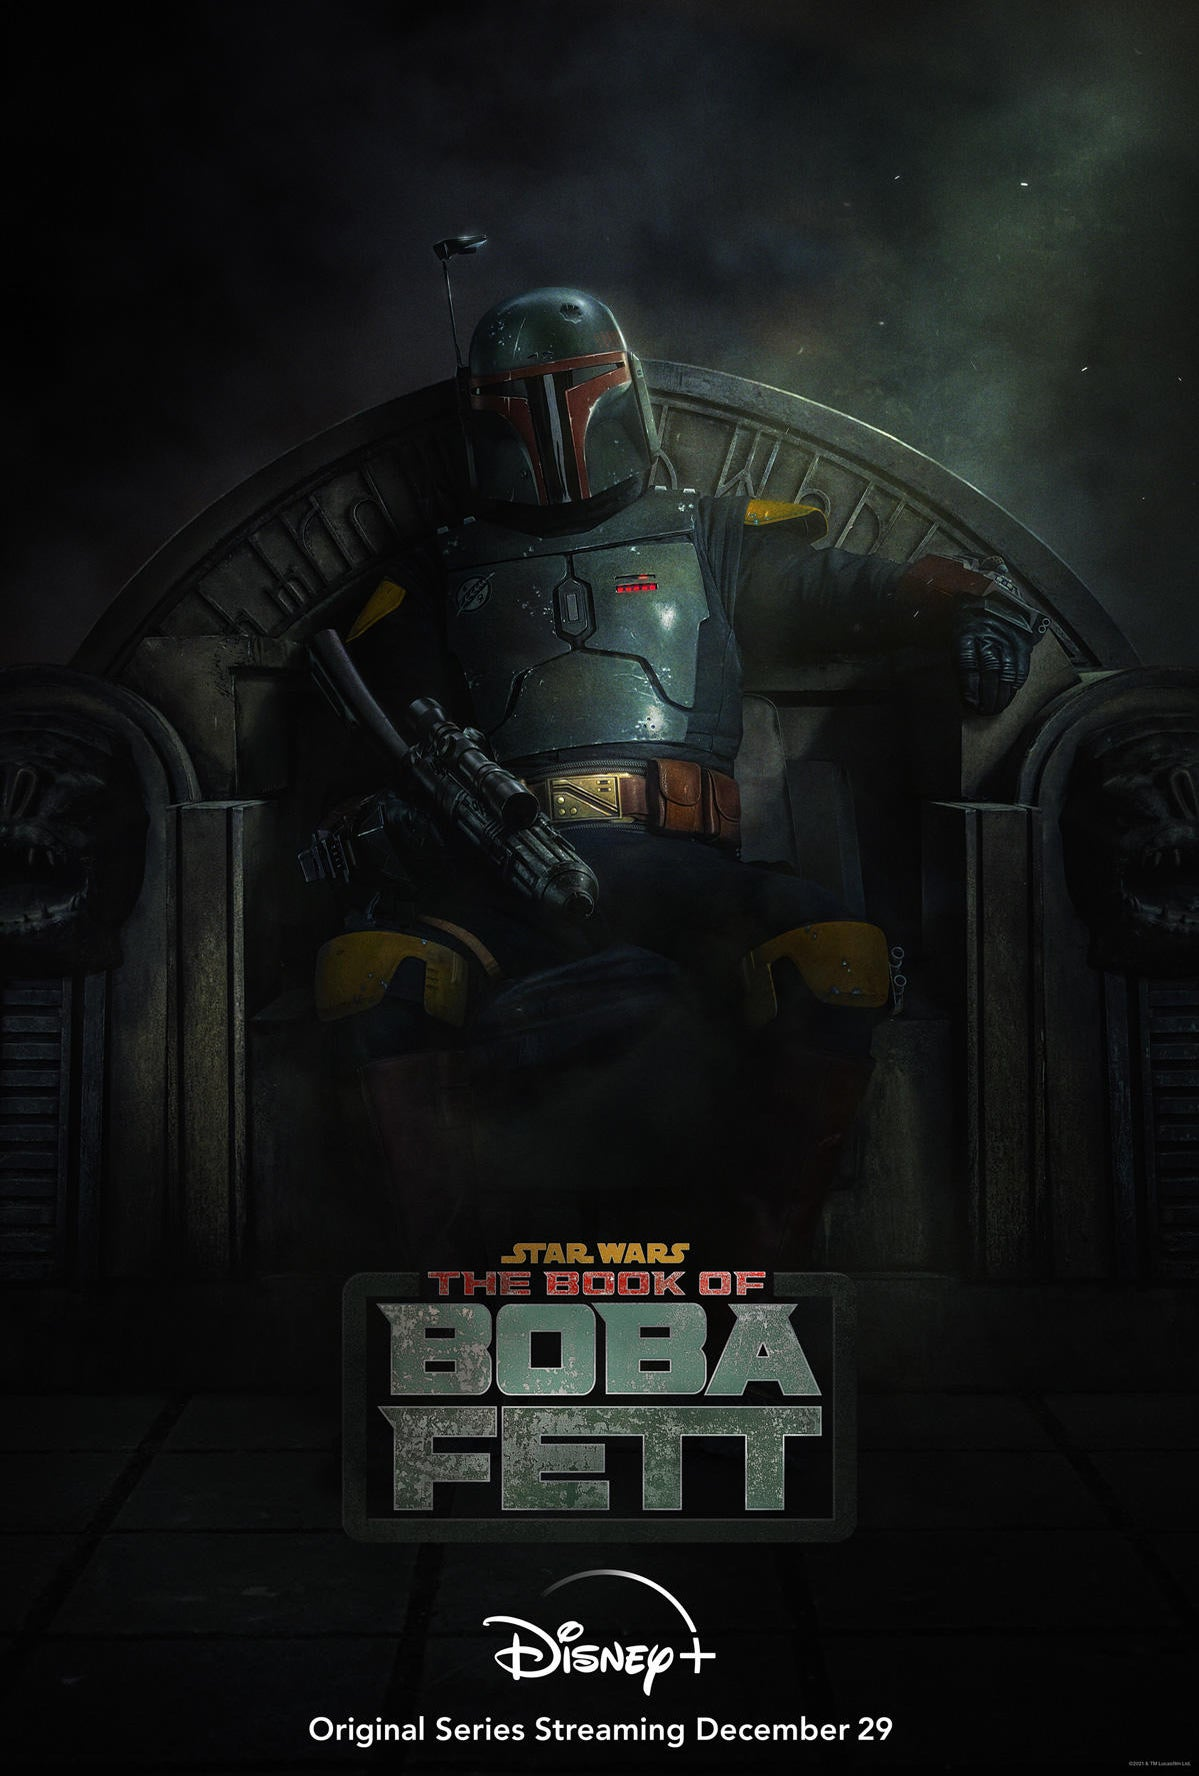 Star Wars: The Book of Boba Fett Premiere Date Revealed on New Poster